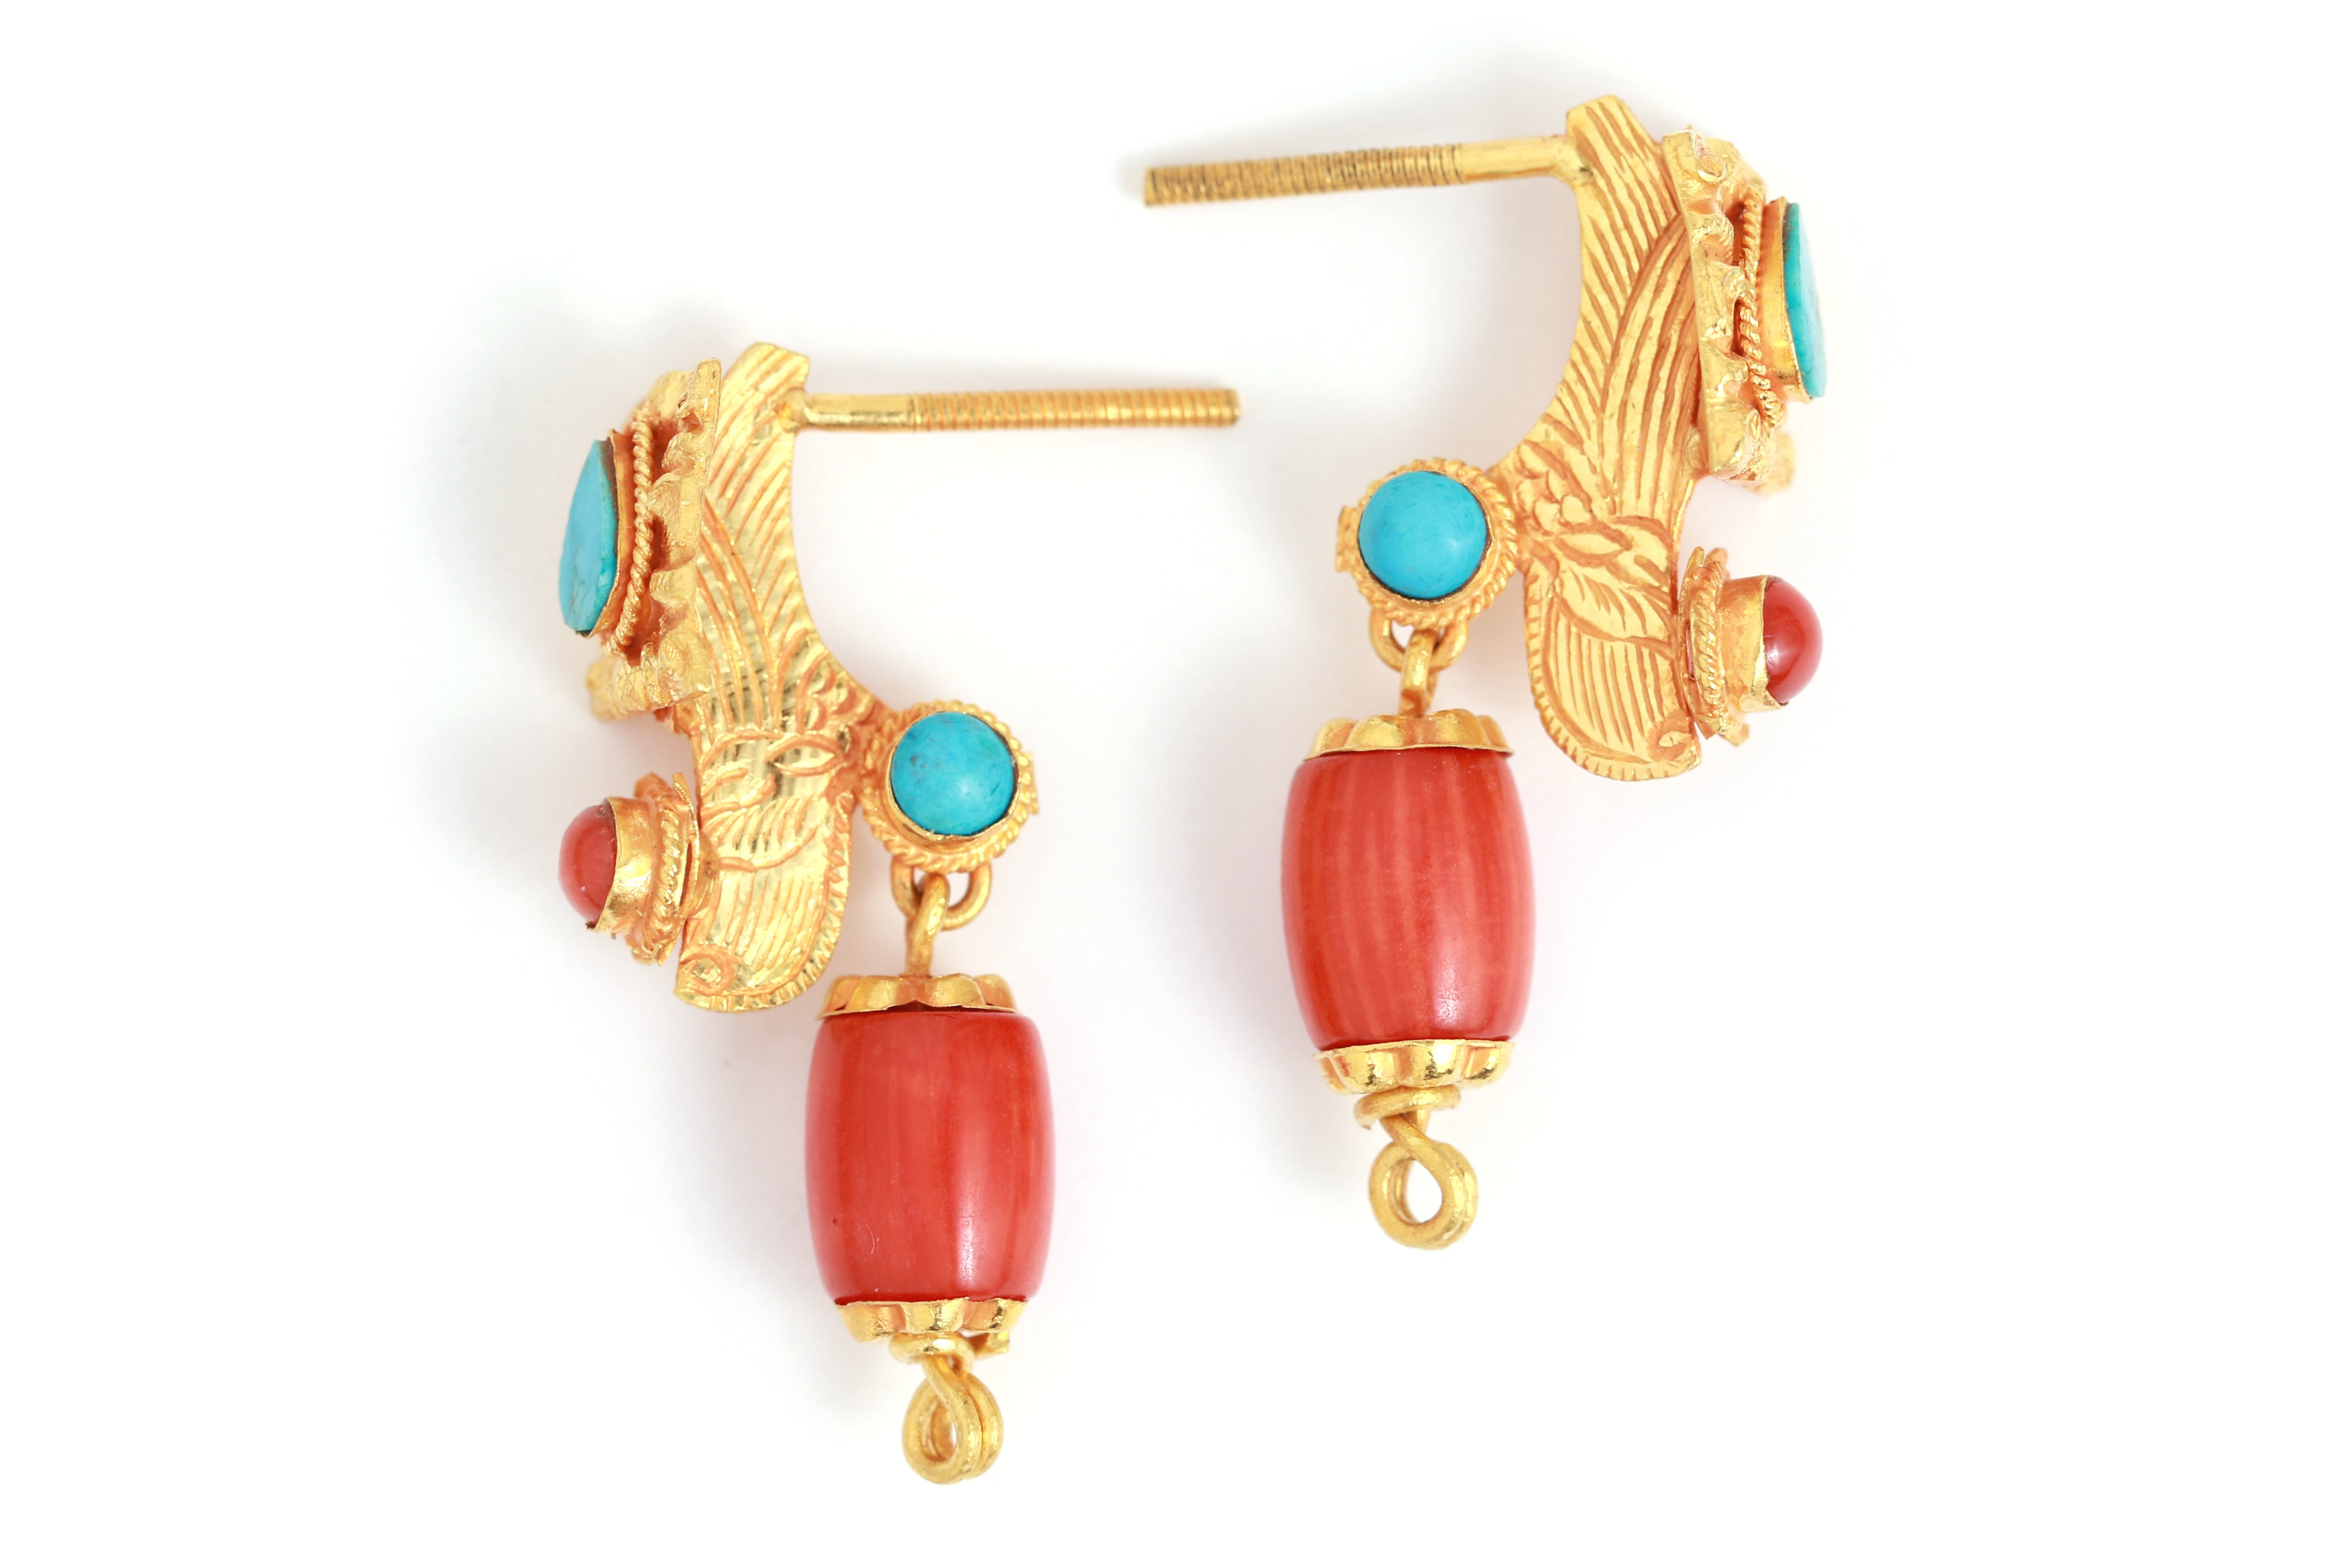 5a48d2bfe Half Alung Design Earrings - Melissa Joy Manning Jewelry